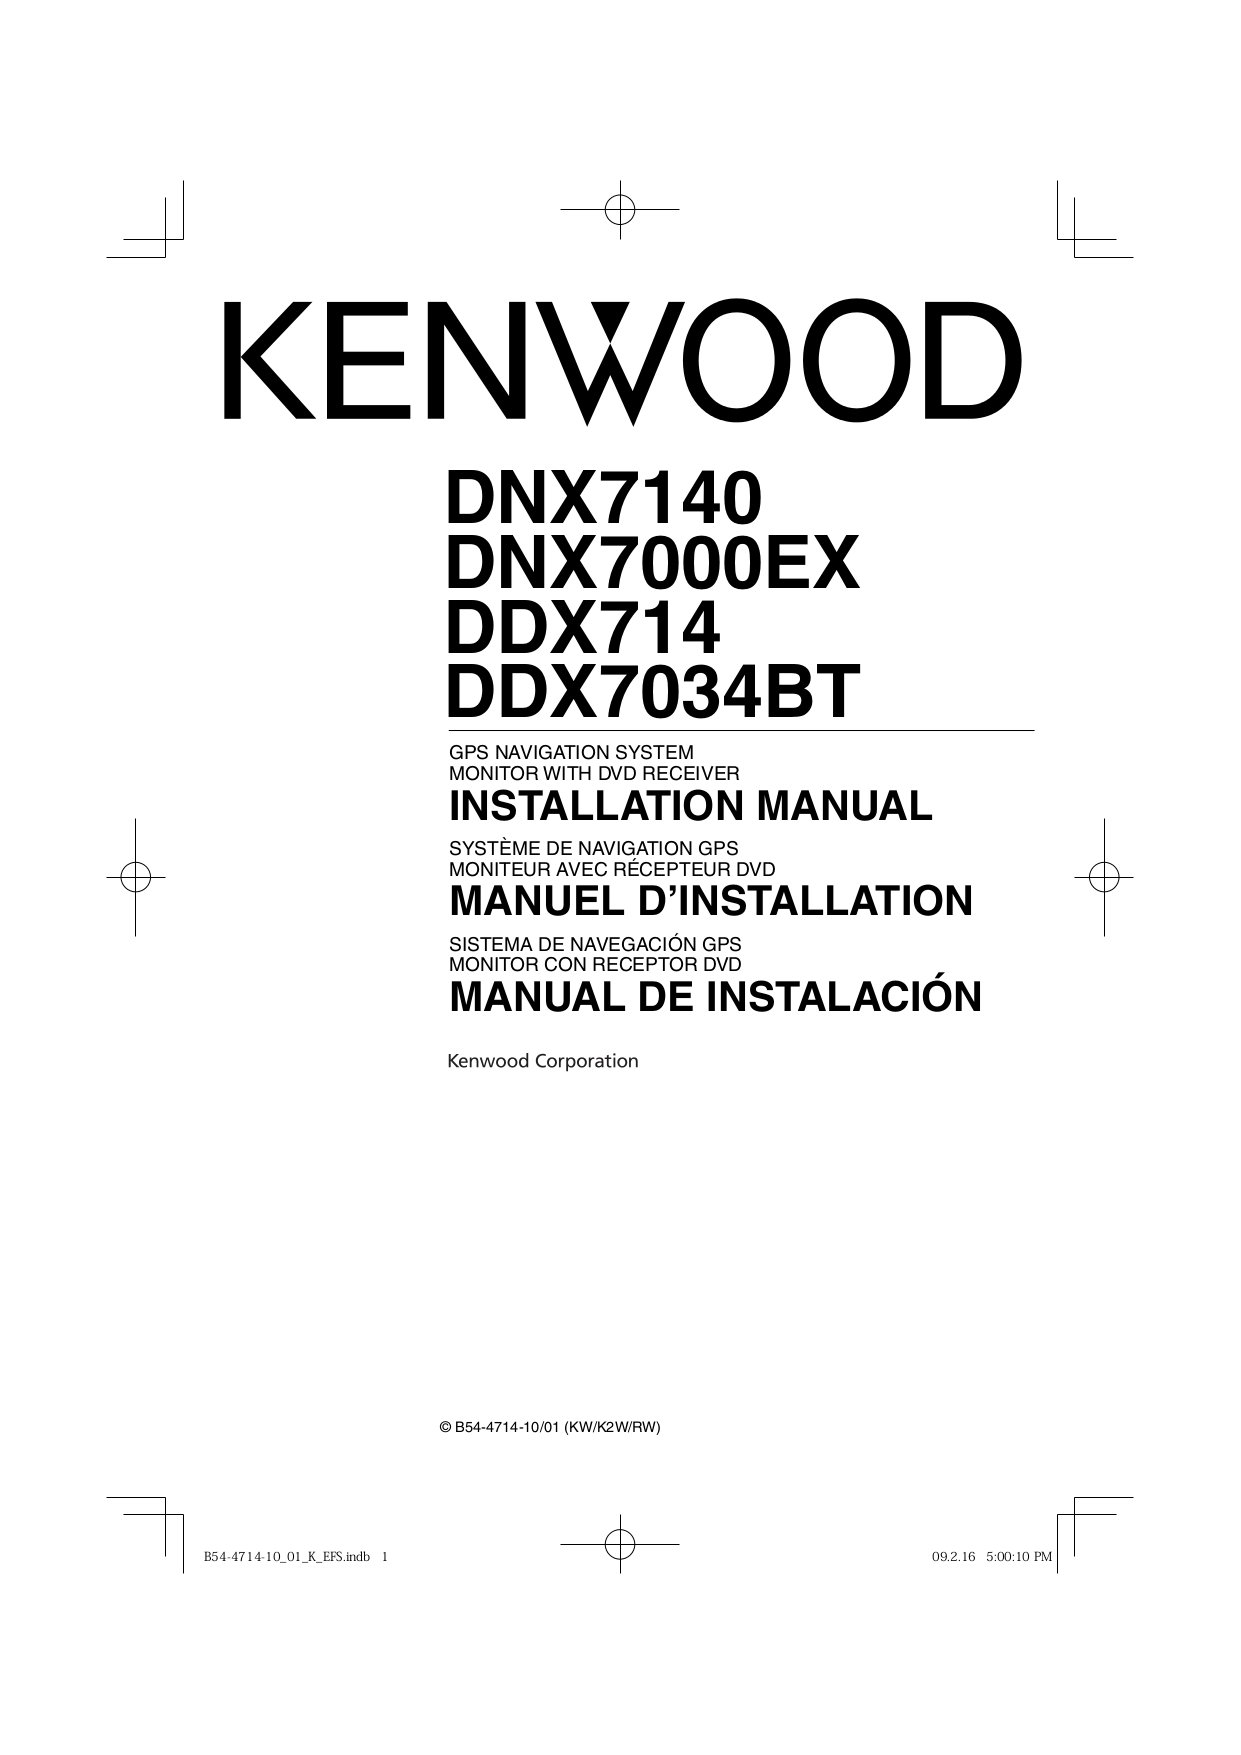 Download Free For Kenwood Ddx Bt Car Receiver Manual